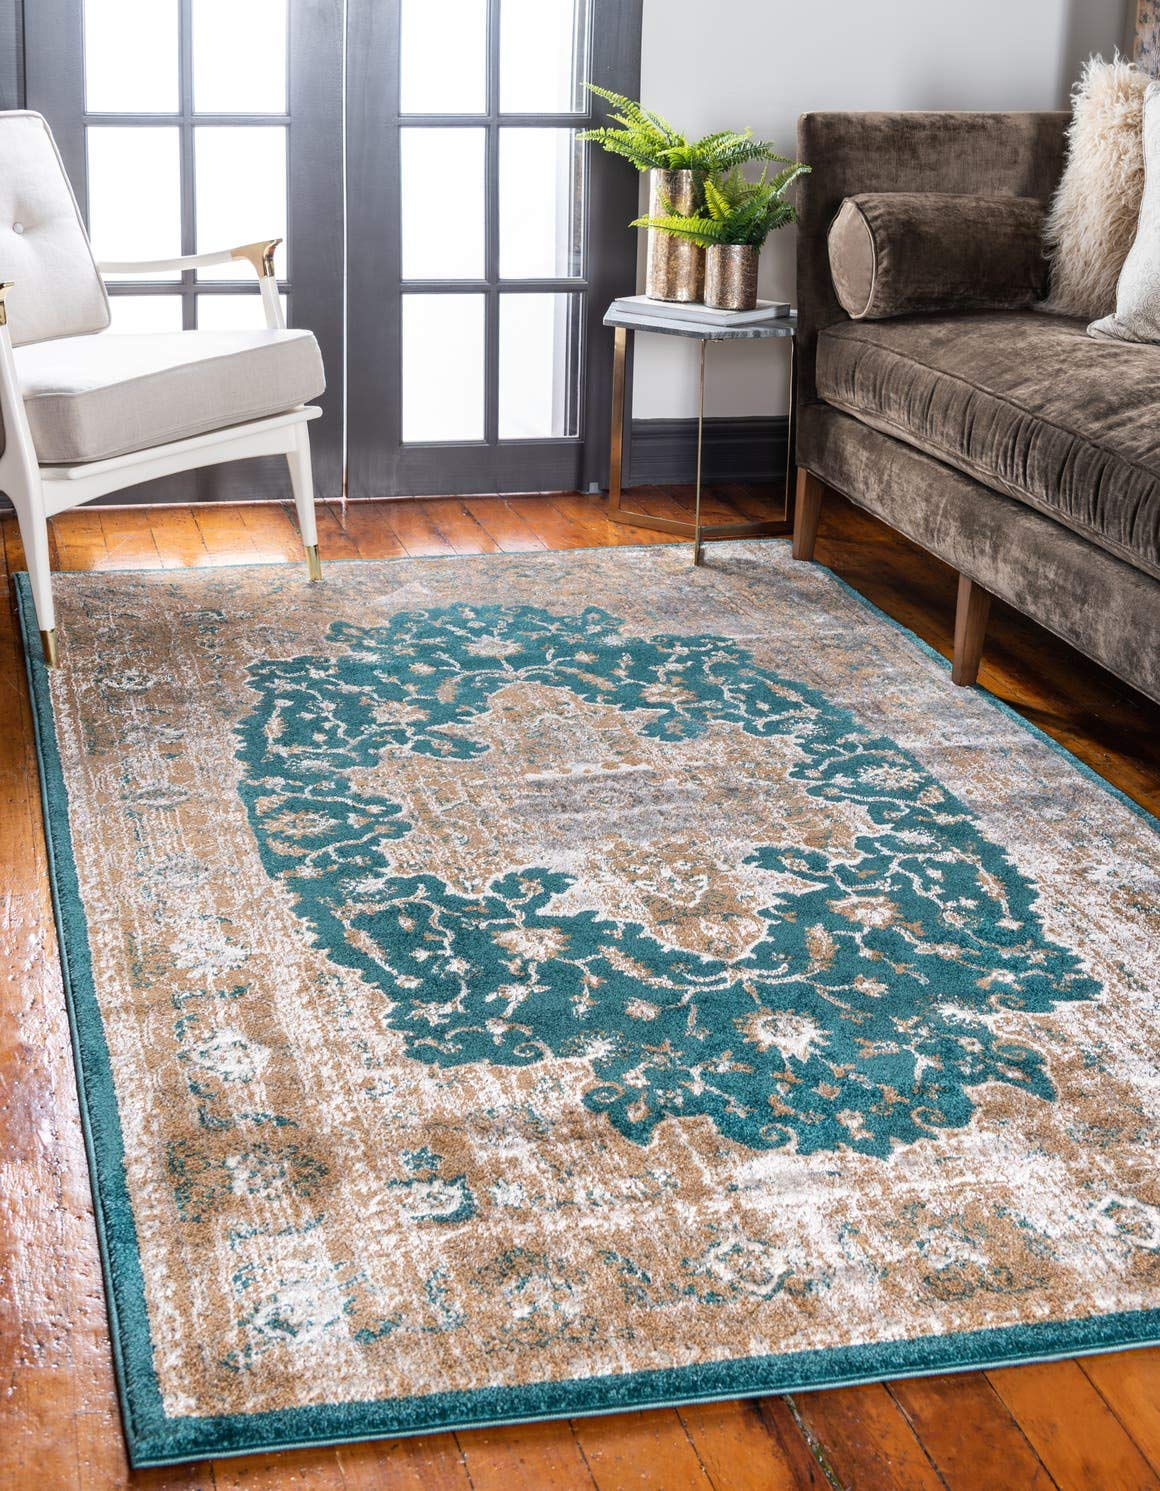 Unique Loom Aurora Collection Vintage Medallion Traditional Border Teal Area Rug 6 0 x 9 0